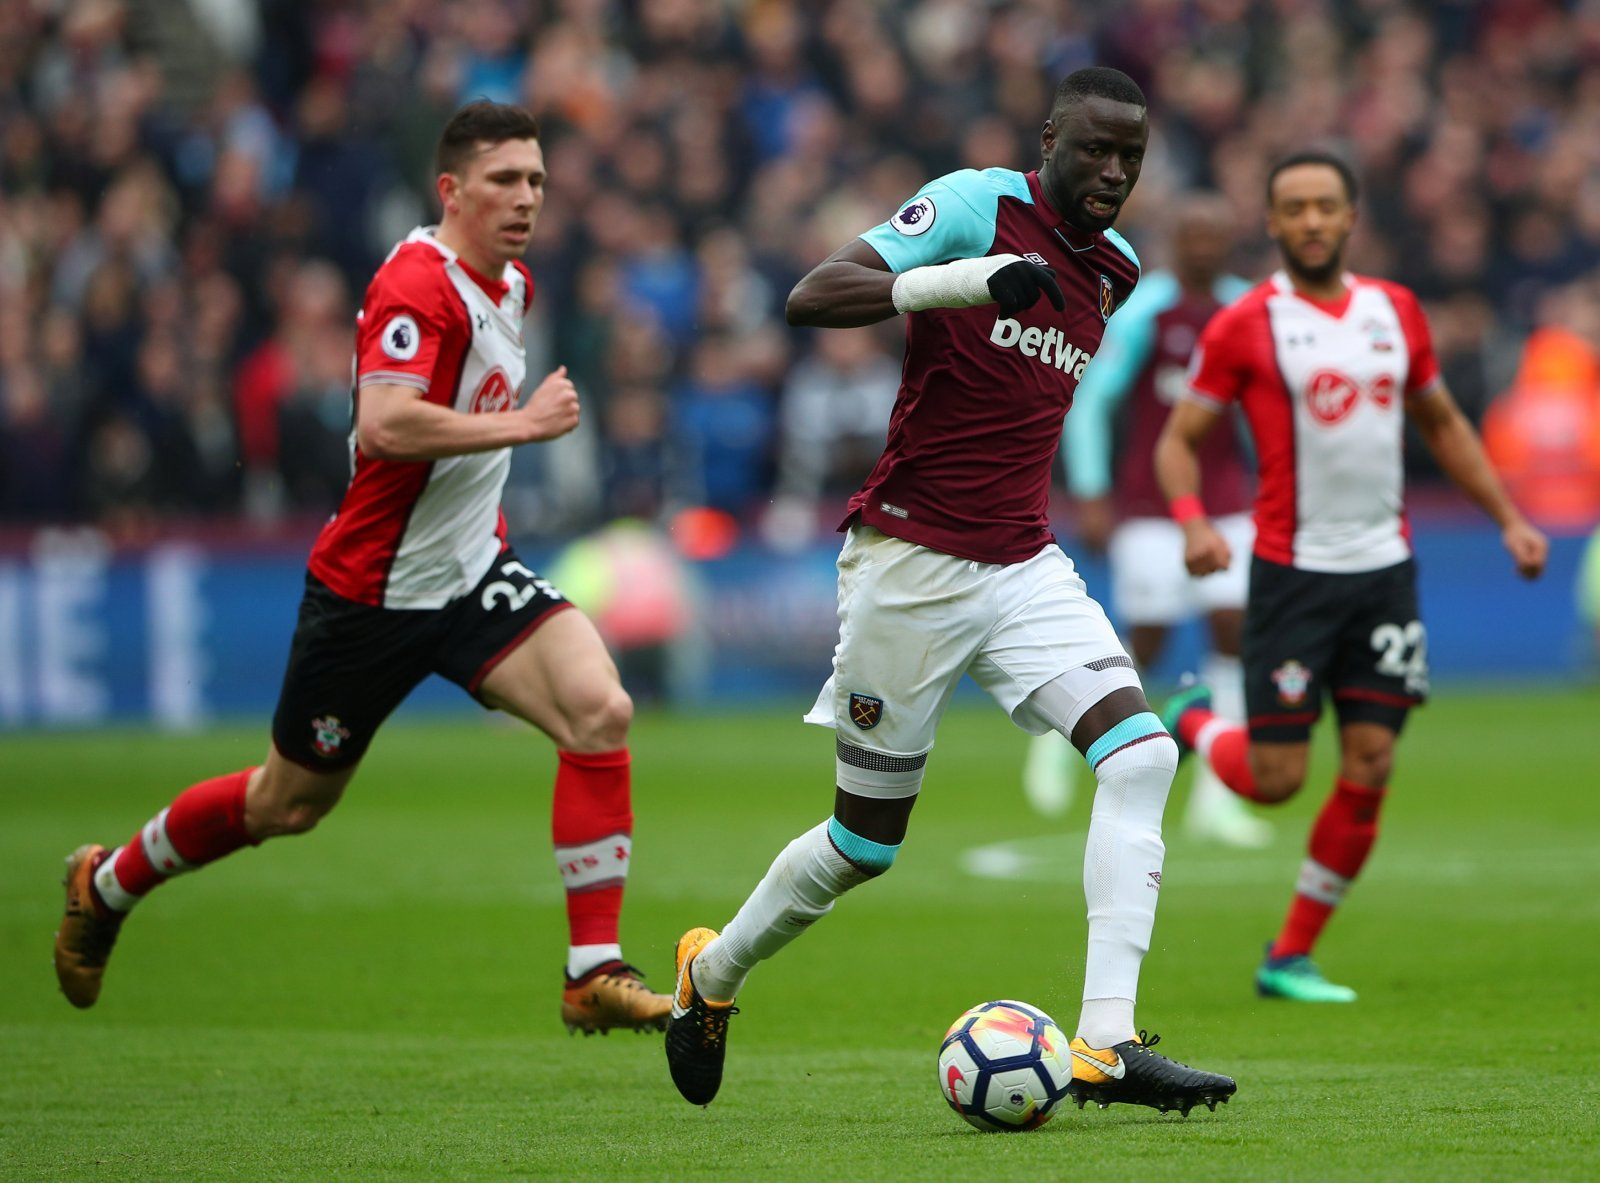 Crystal Palace stumbling with deal for Cheikhou Kouyate